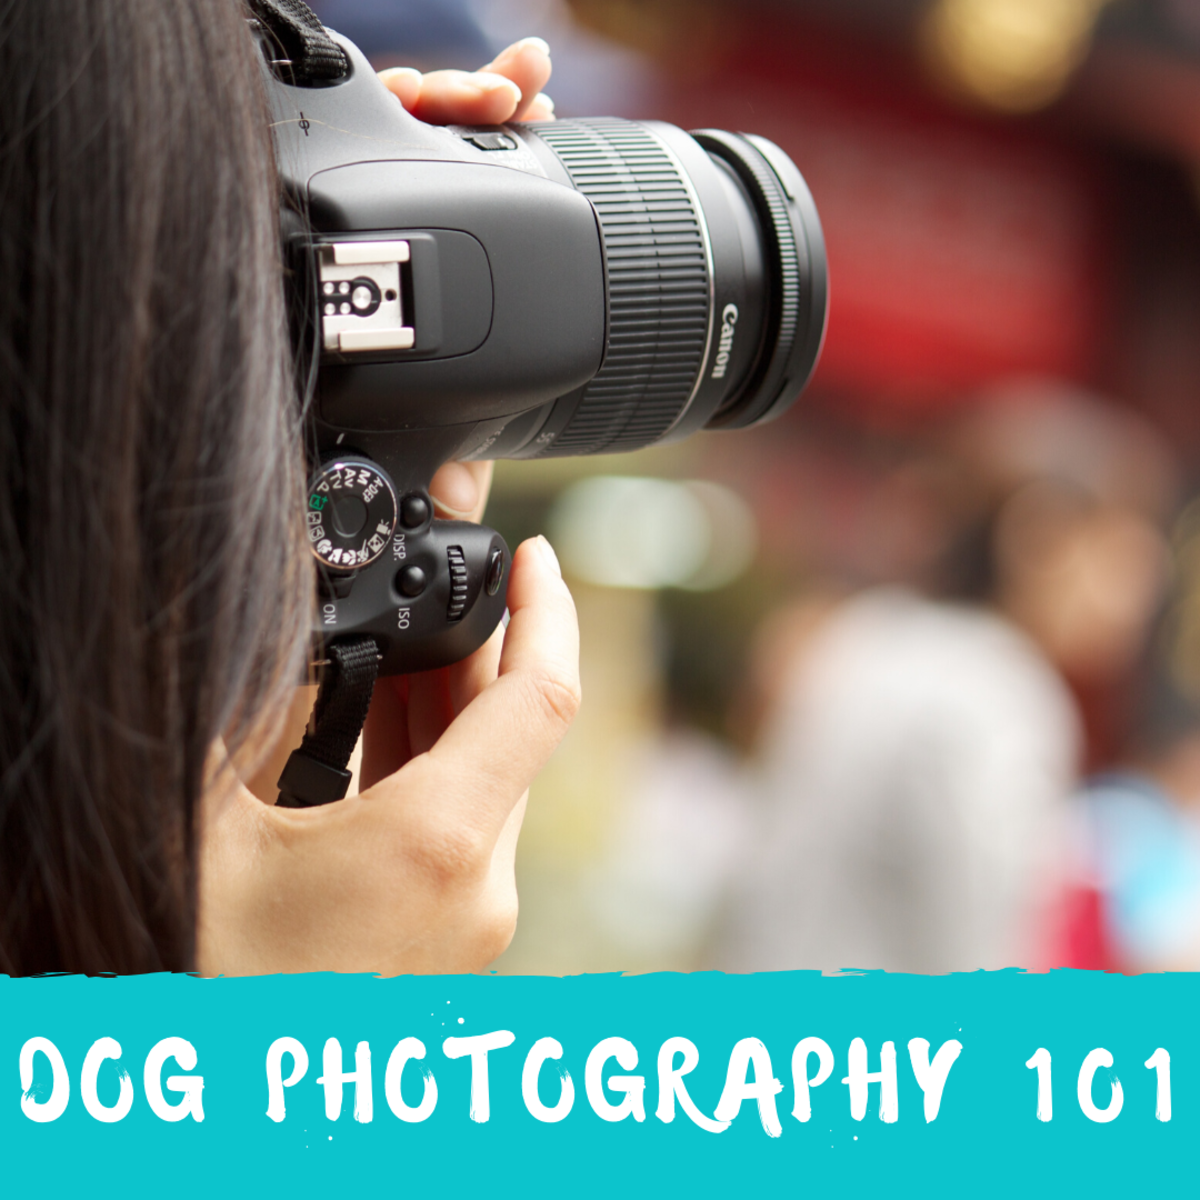 A Dog Photography Tutorial for Beginners